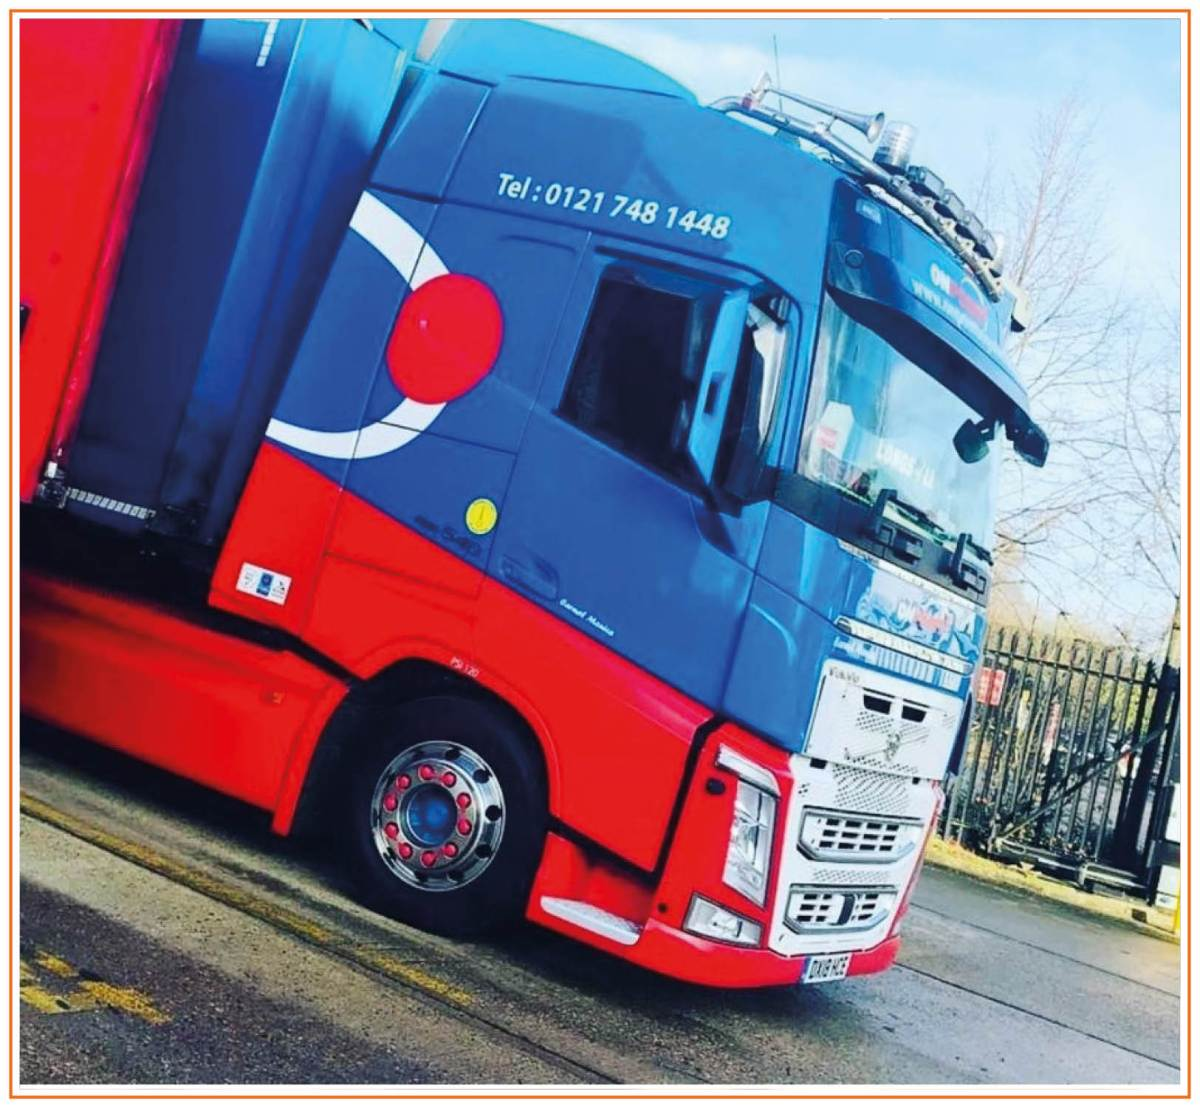 https://i1.wp.com/haultech.co.uk/wp-content/uploads/2020/04/Onpoint-Logisitcs-Driving-Growth-with-HaulTech-Transport-Management-System.jpg?fit=1200%2C1108&ssl=1